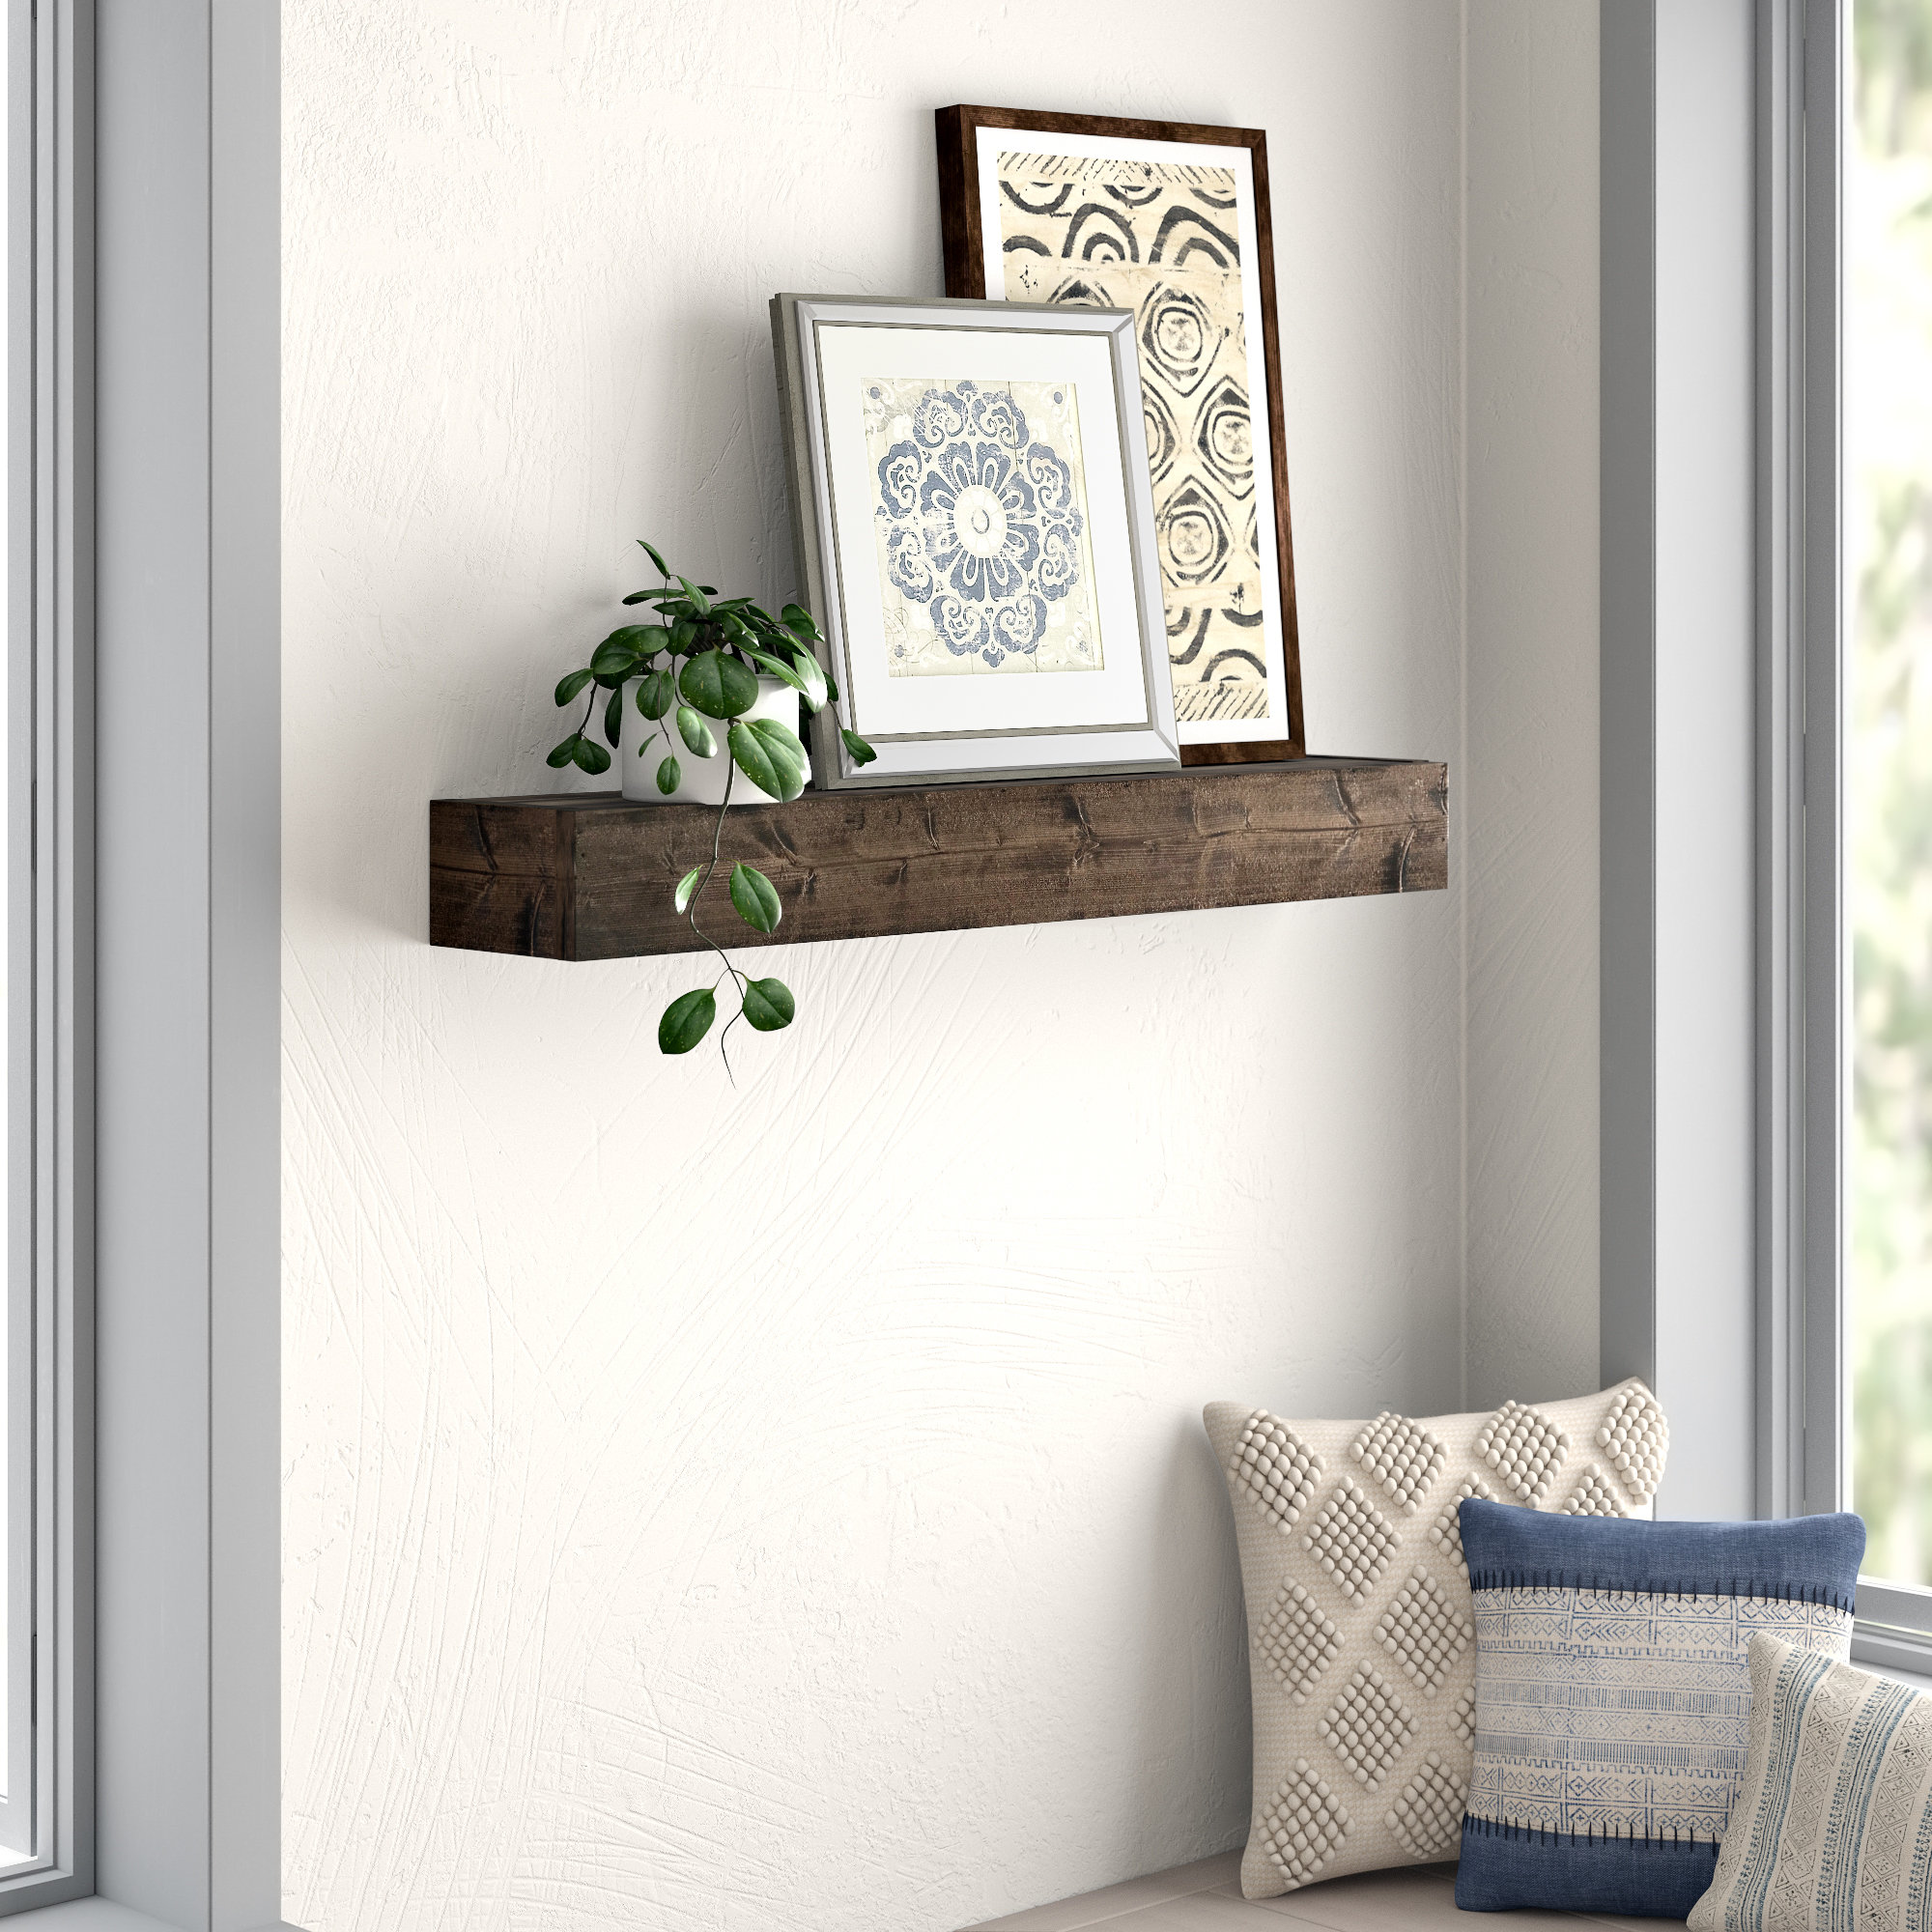 mistana kaydence wood floating shelf reviews shelves living room diy boot storage ideas command adhesive tape tures decorated bookshelves wickes wall brackets baby with hooks